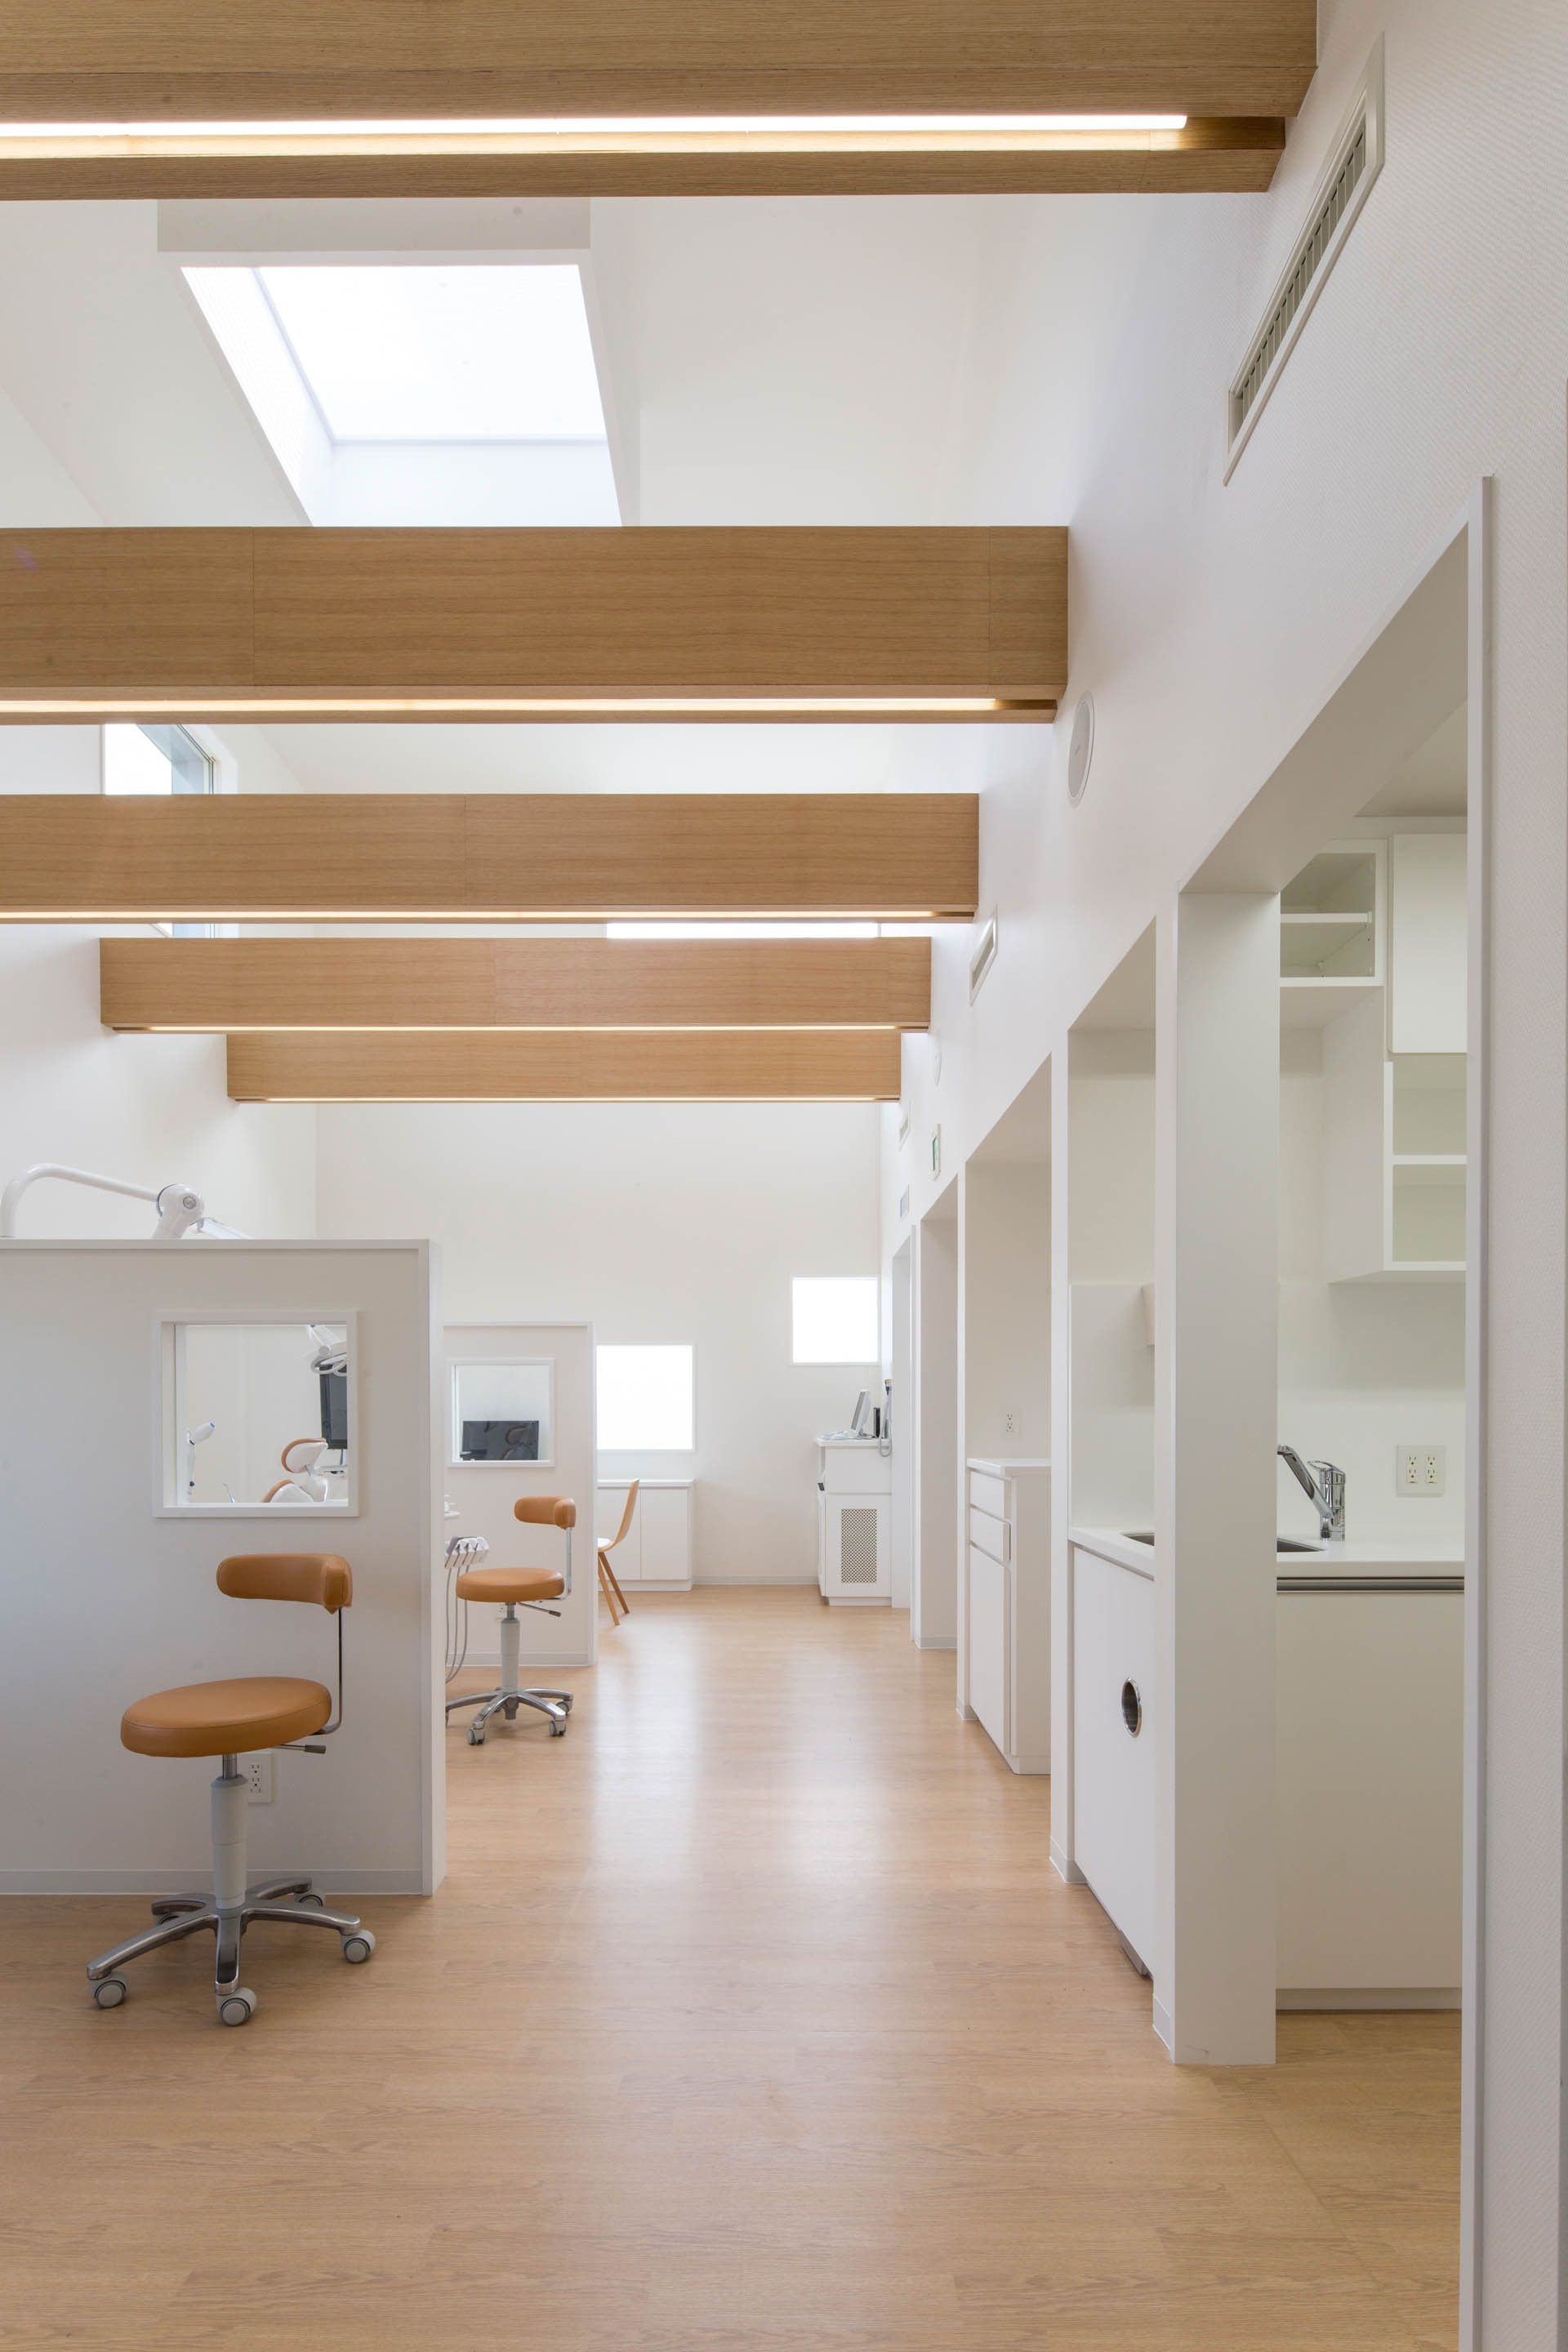 Image 3 Of 23 From Gallery Yokoi Dental Clinic Iks Design Msd Office Photograph By Keisuke Nakagami